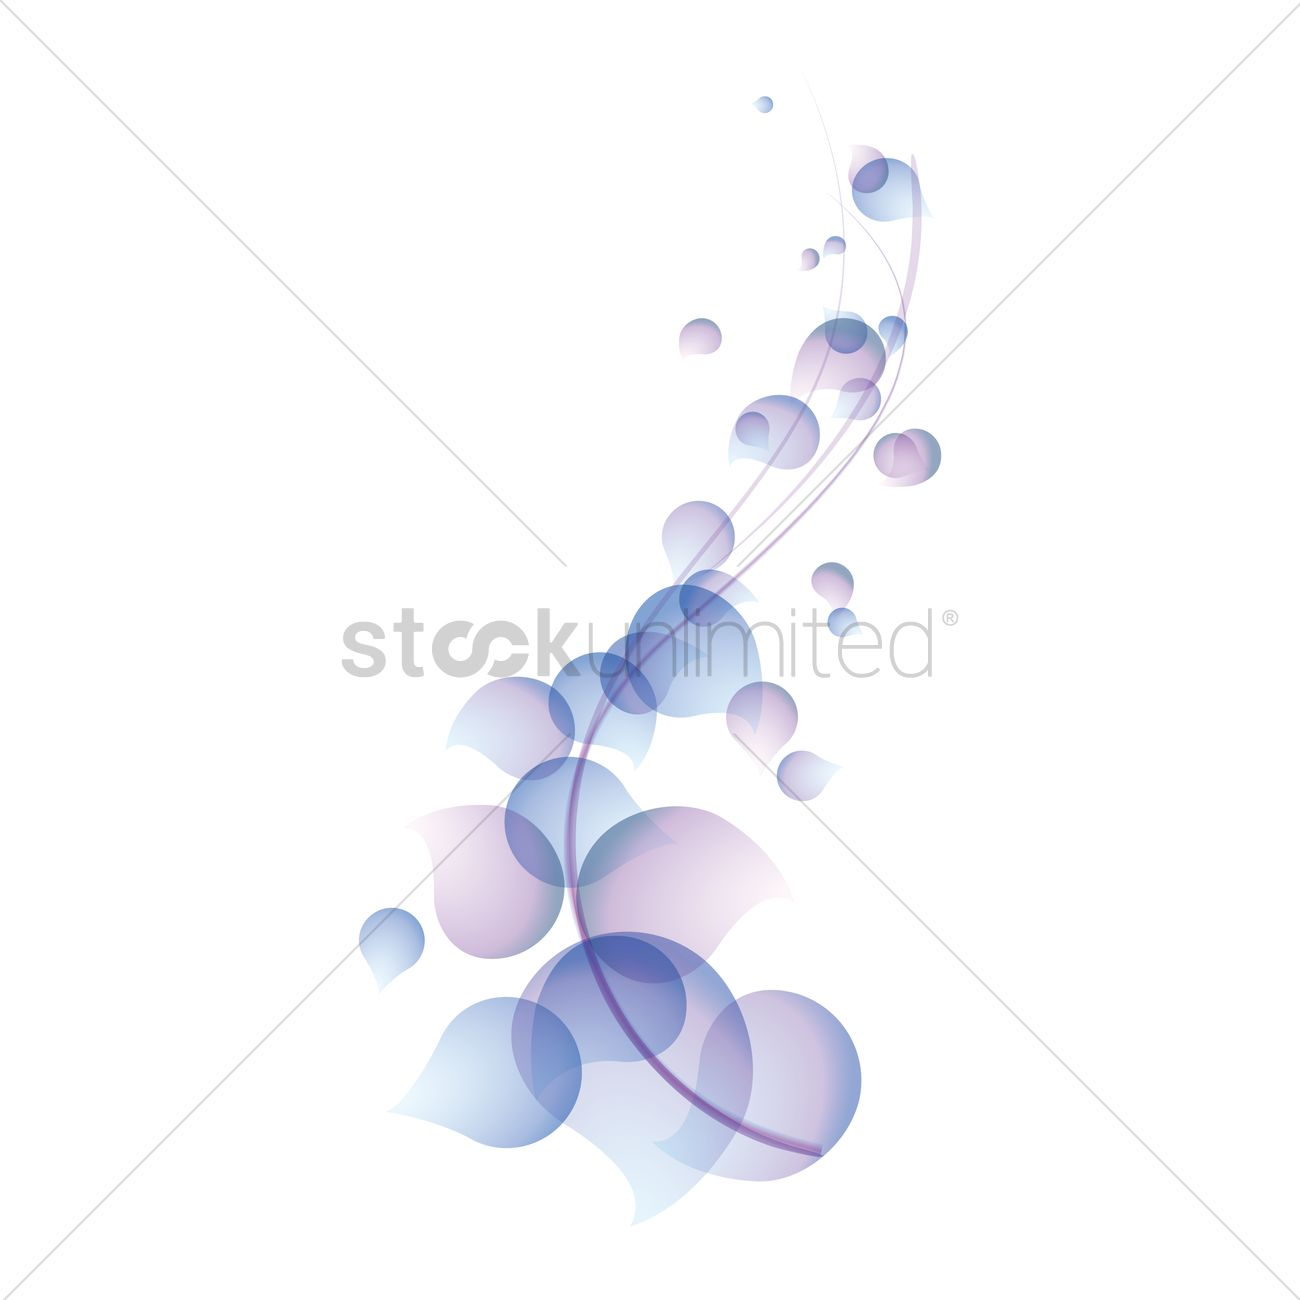 Simple Background Designs